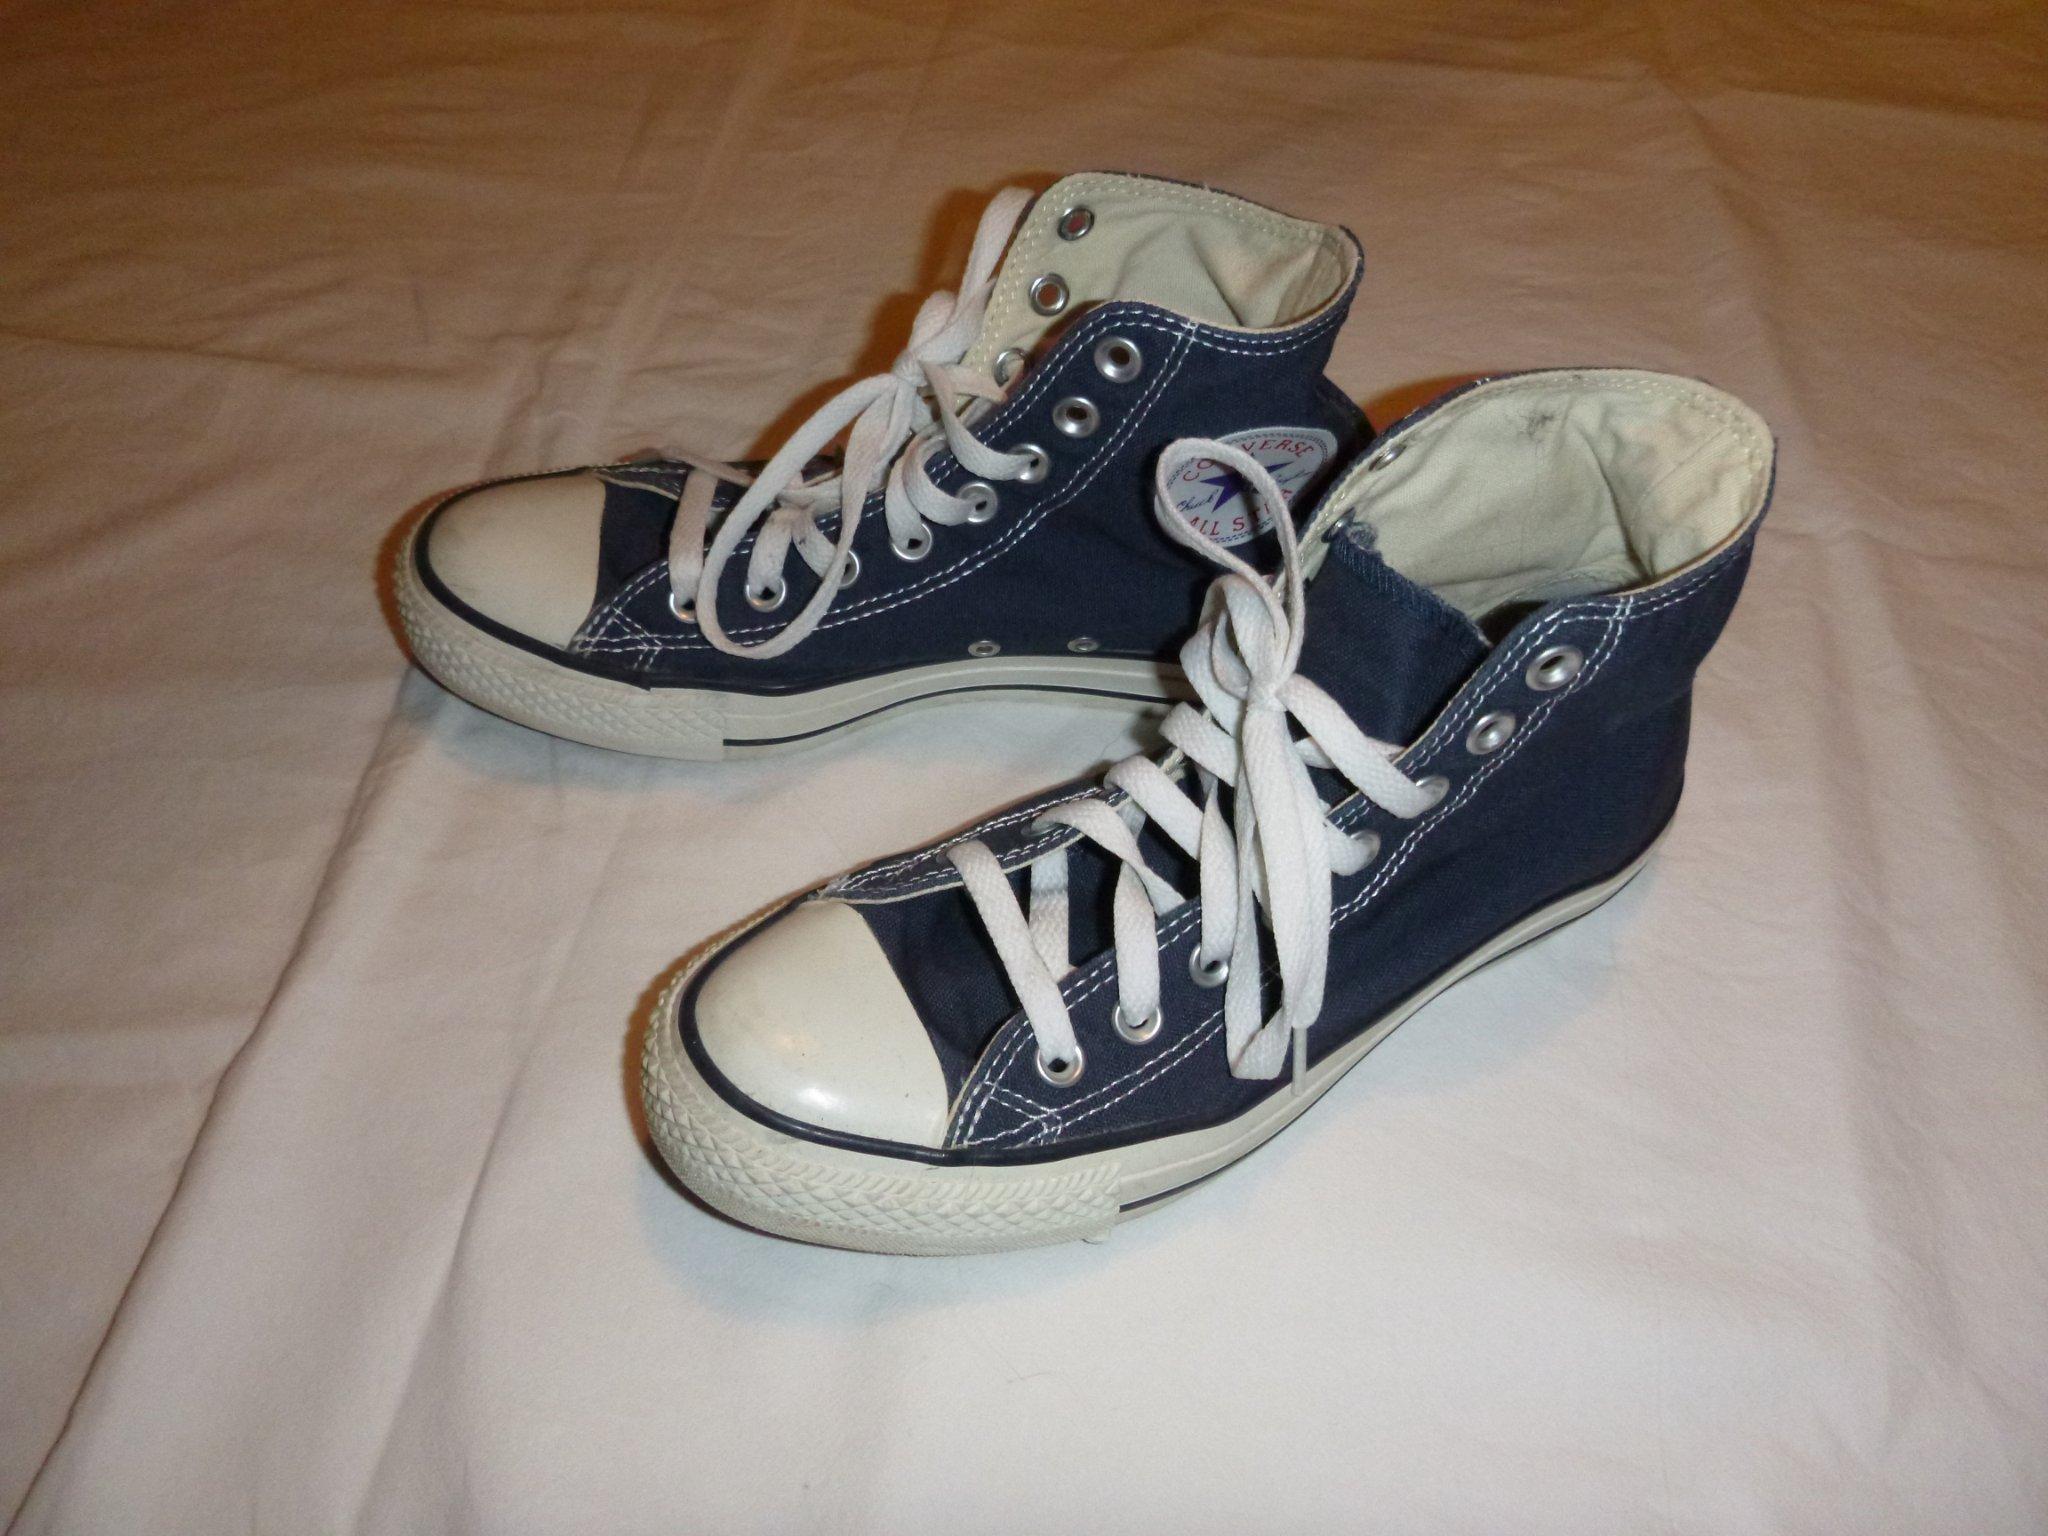 san francisco 6653e 76459 Converse skor (Chuck Taylor All Star High) 6,5 8,5